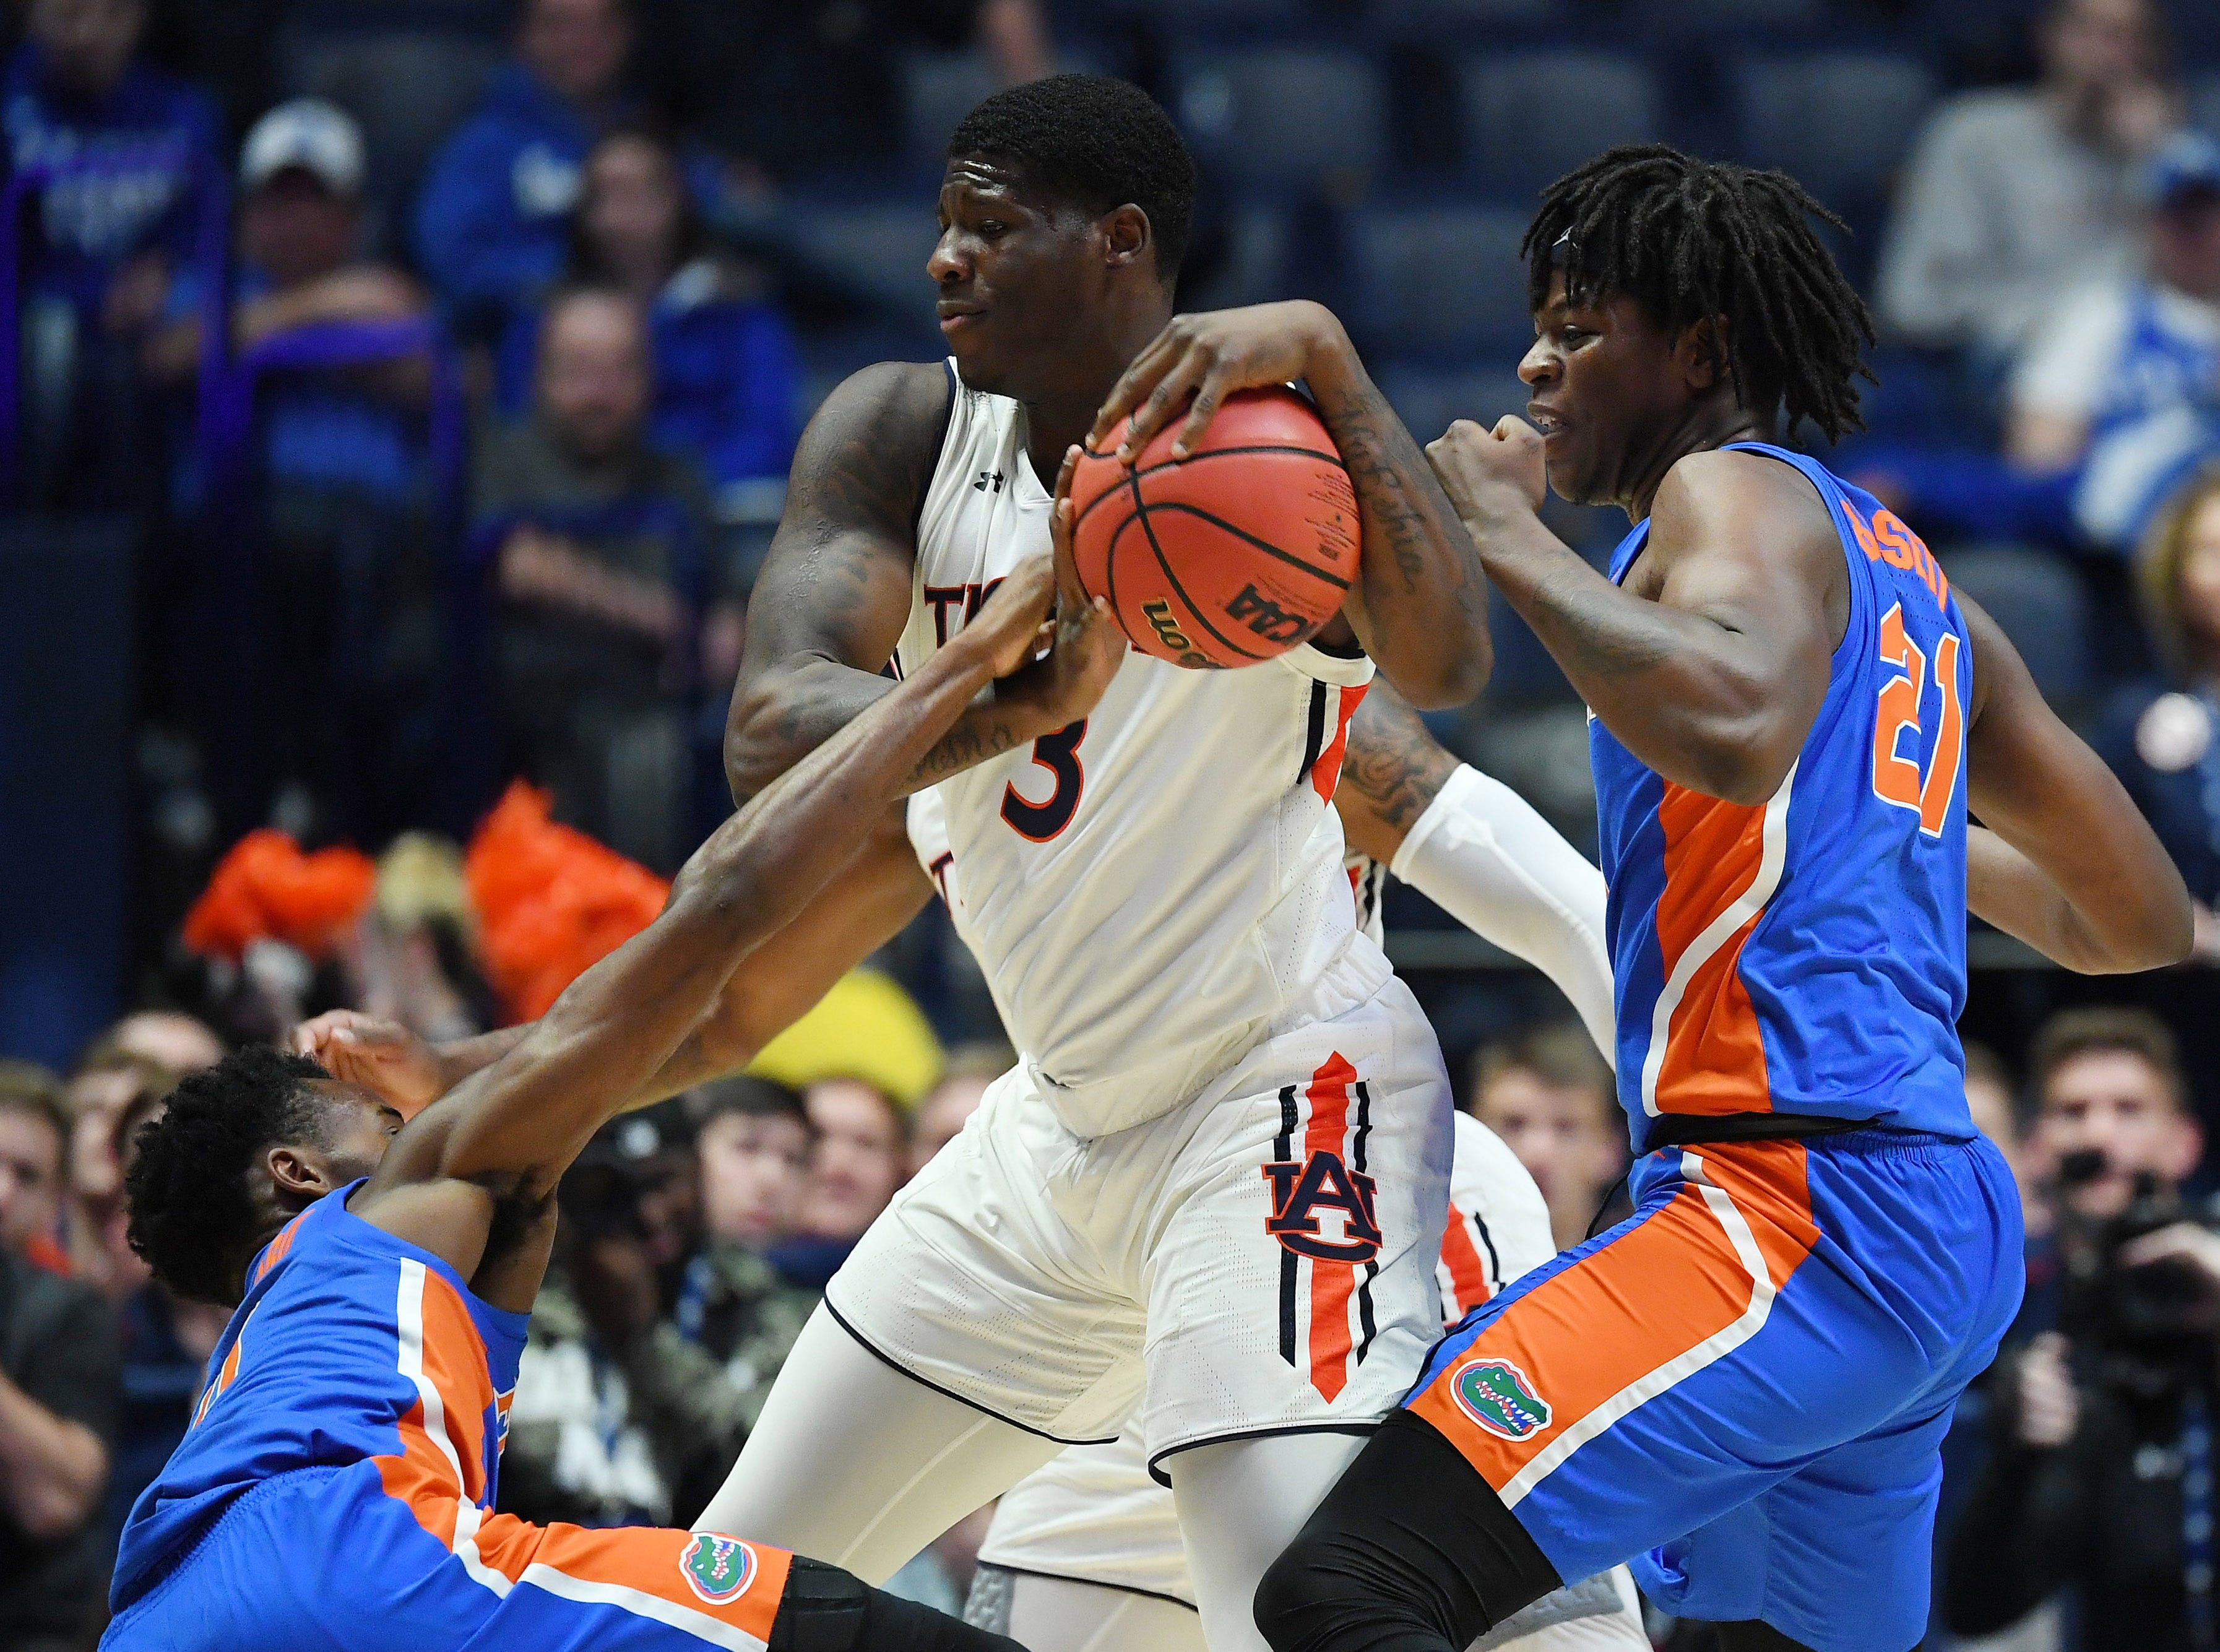 Mar 16, 2019; Nashville, TN, USA; Auburn Tigers forward Danjel Purifoy (3) controls the ball between Florida Gators guard Mike Okauru (0) and Gators forward Dontay Bassett (21) during the first half of the SEC conference tournament at Bridgestone Arena. Mandatory Credit: Christopher Hanewinckel-USA TODAY Sports